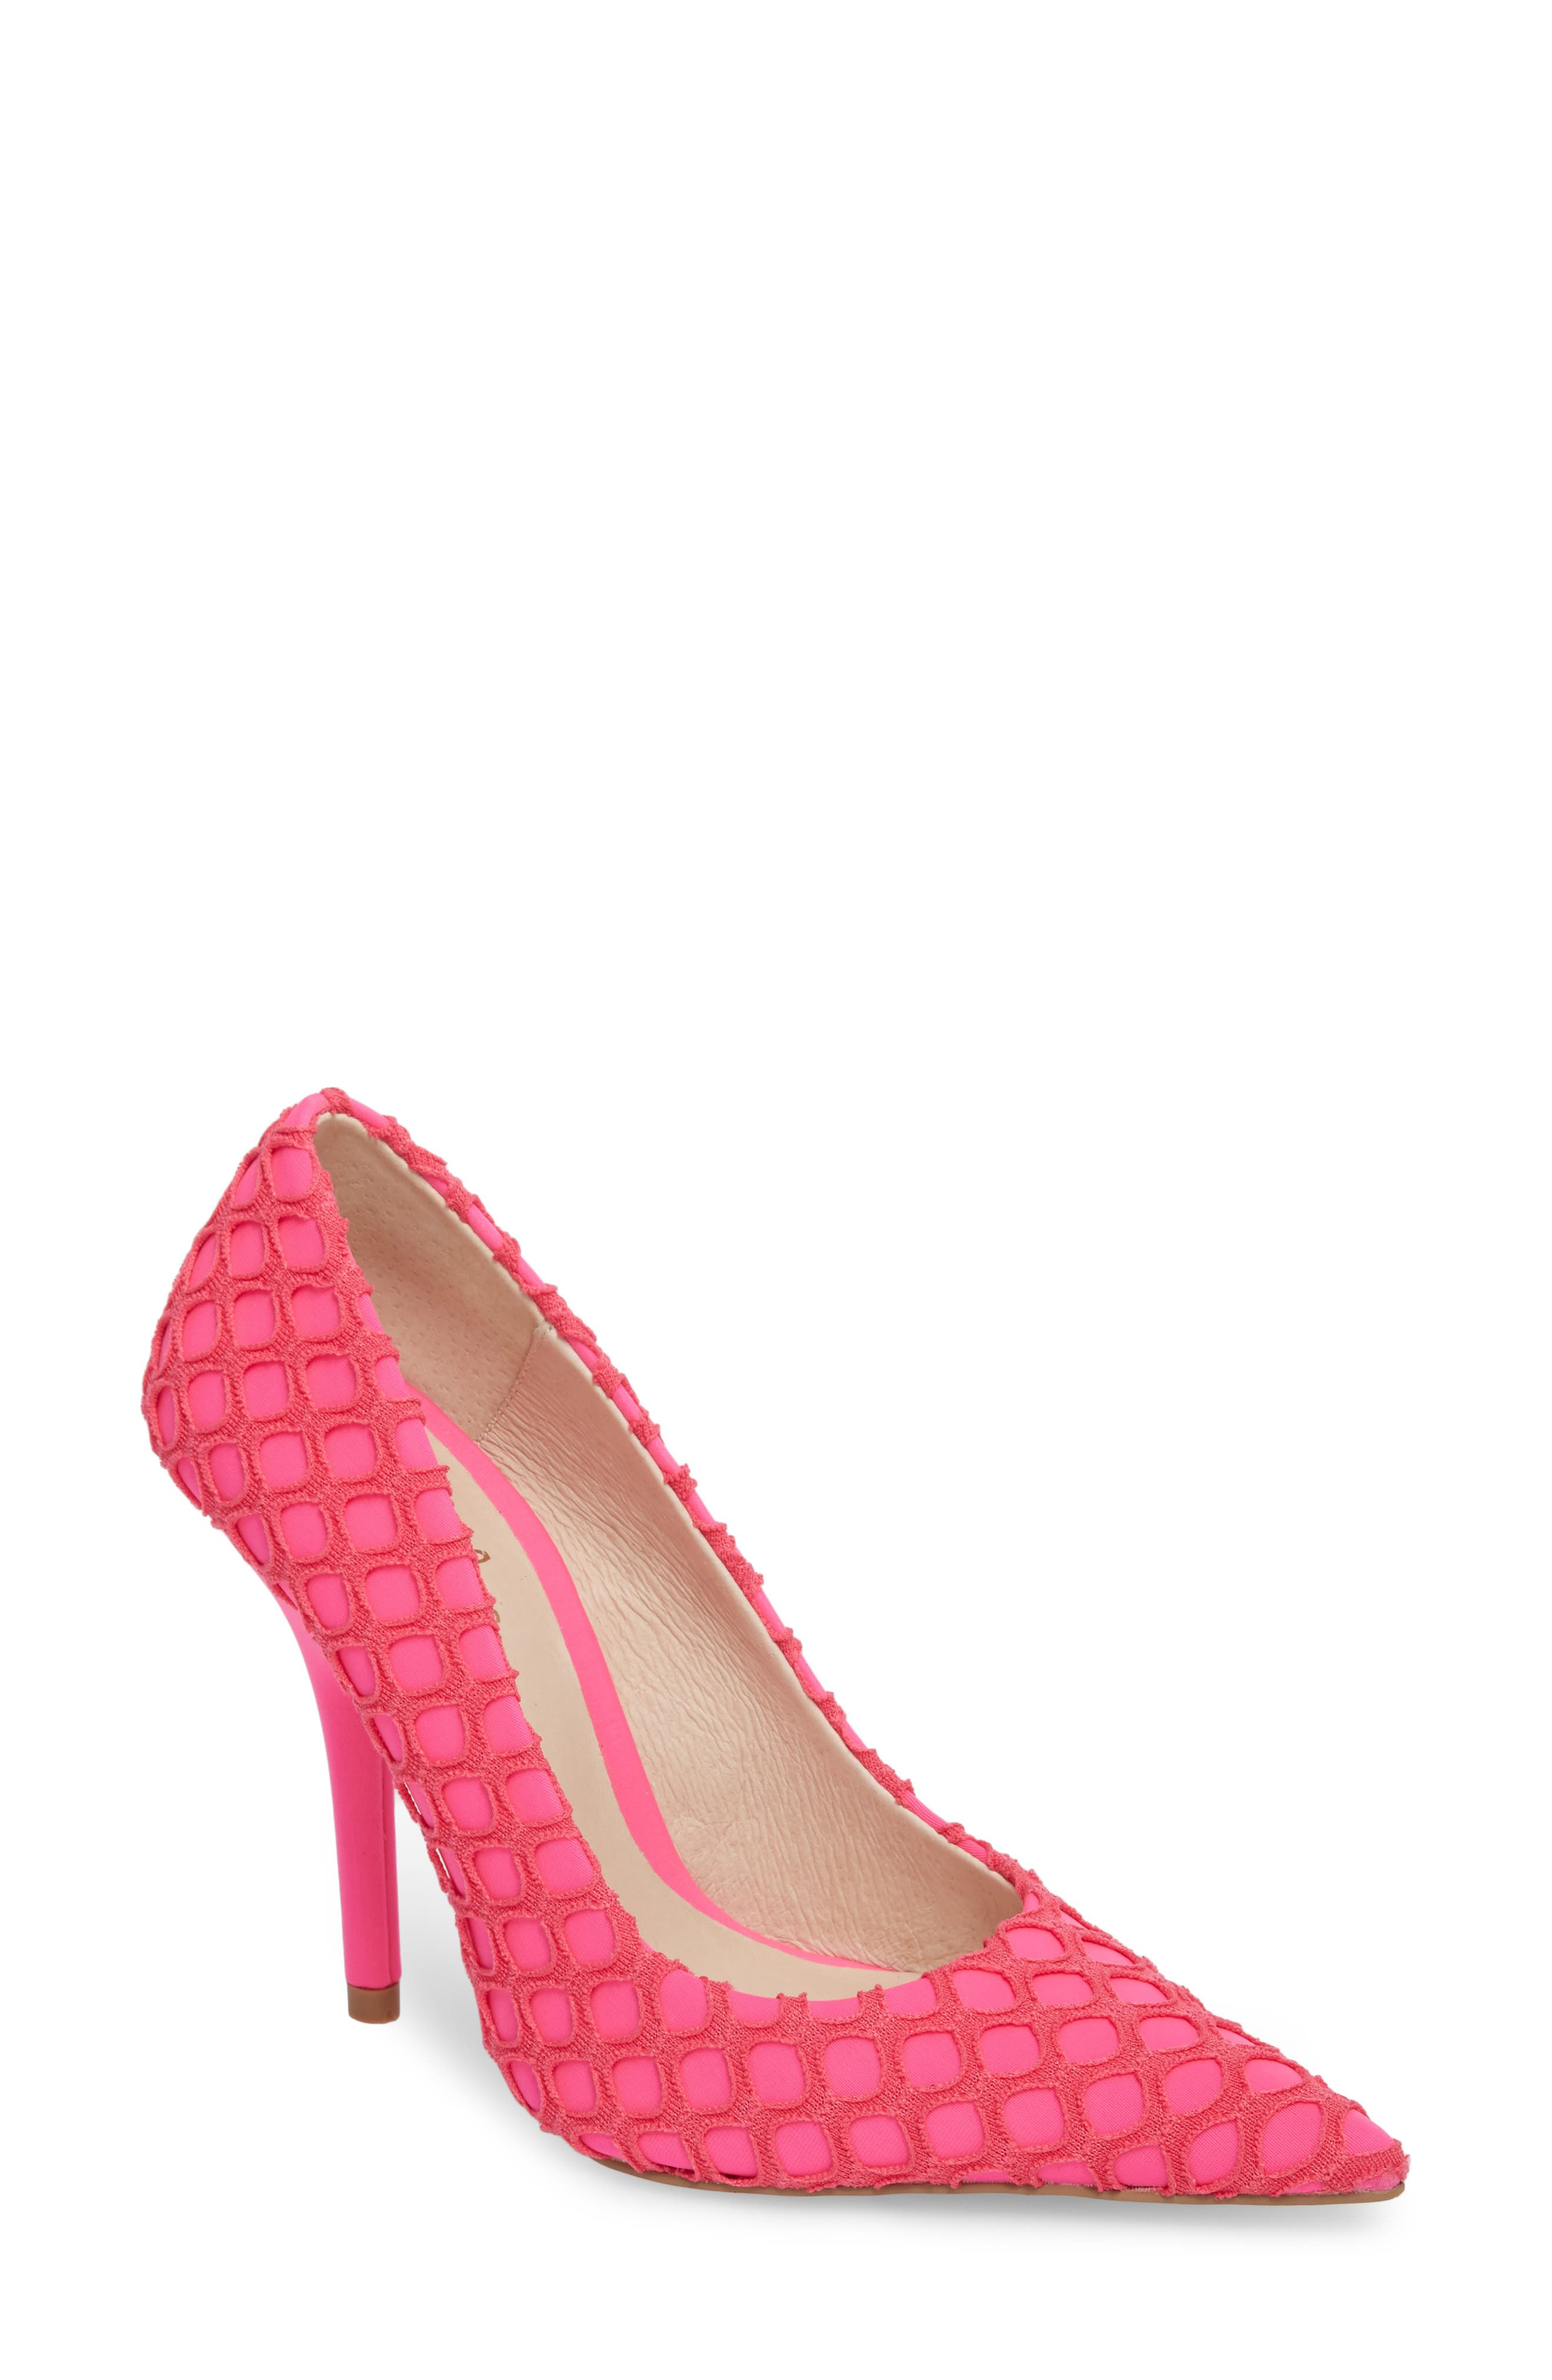 Alternate Image 1 Selected - Shellys London Heather Pointy Toe Pump (Women)